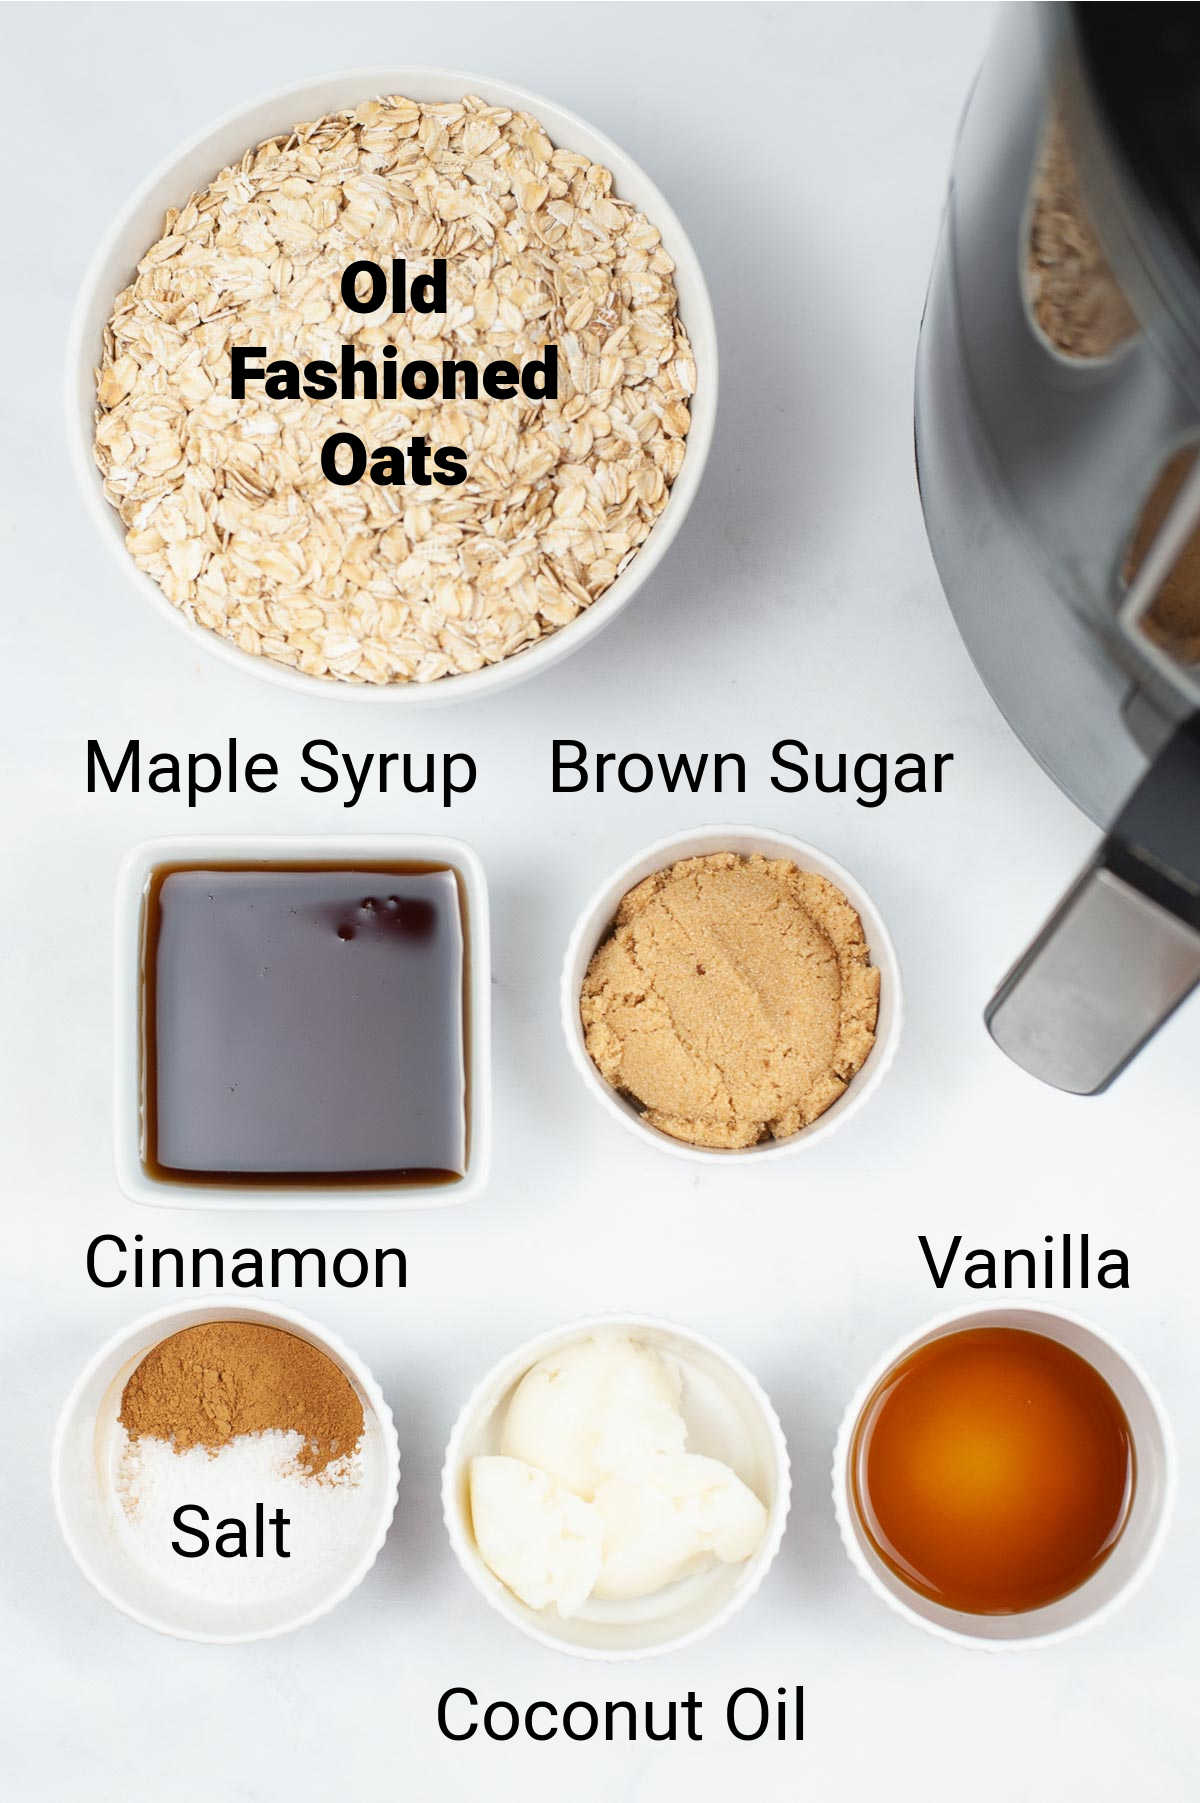 ingredient photo showing oats, cinnamon, syrup, sugar, vanilla and coconut oil on the table with labels.